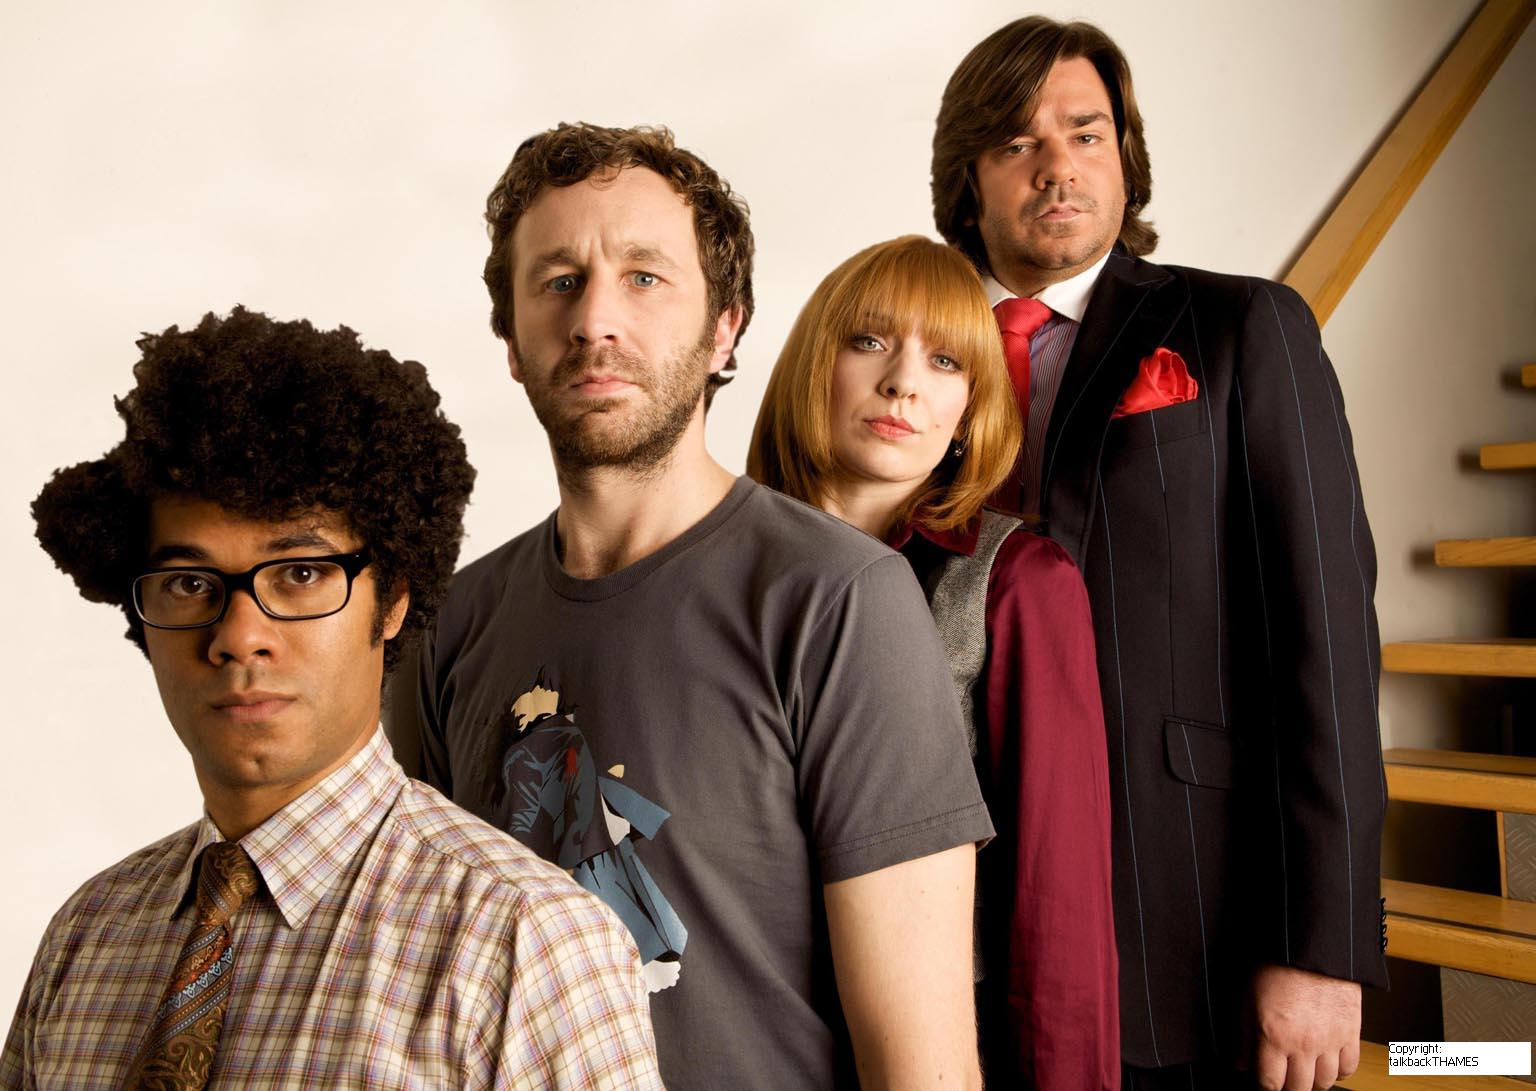 The IT Crowd volta com um último episódio